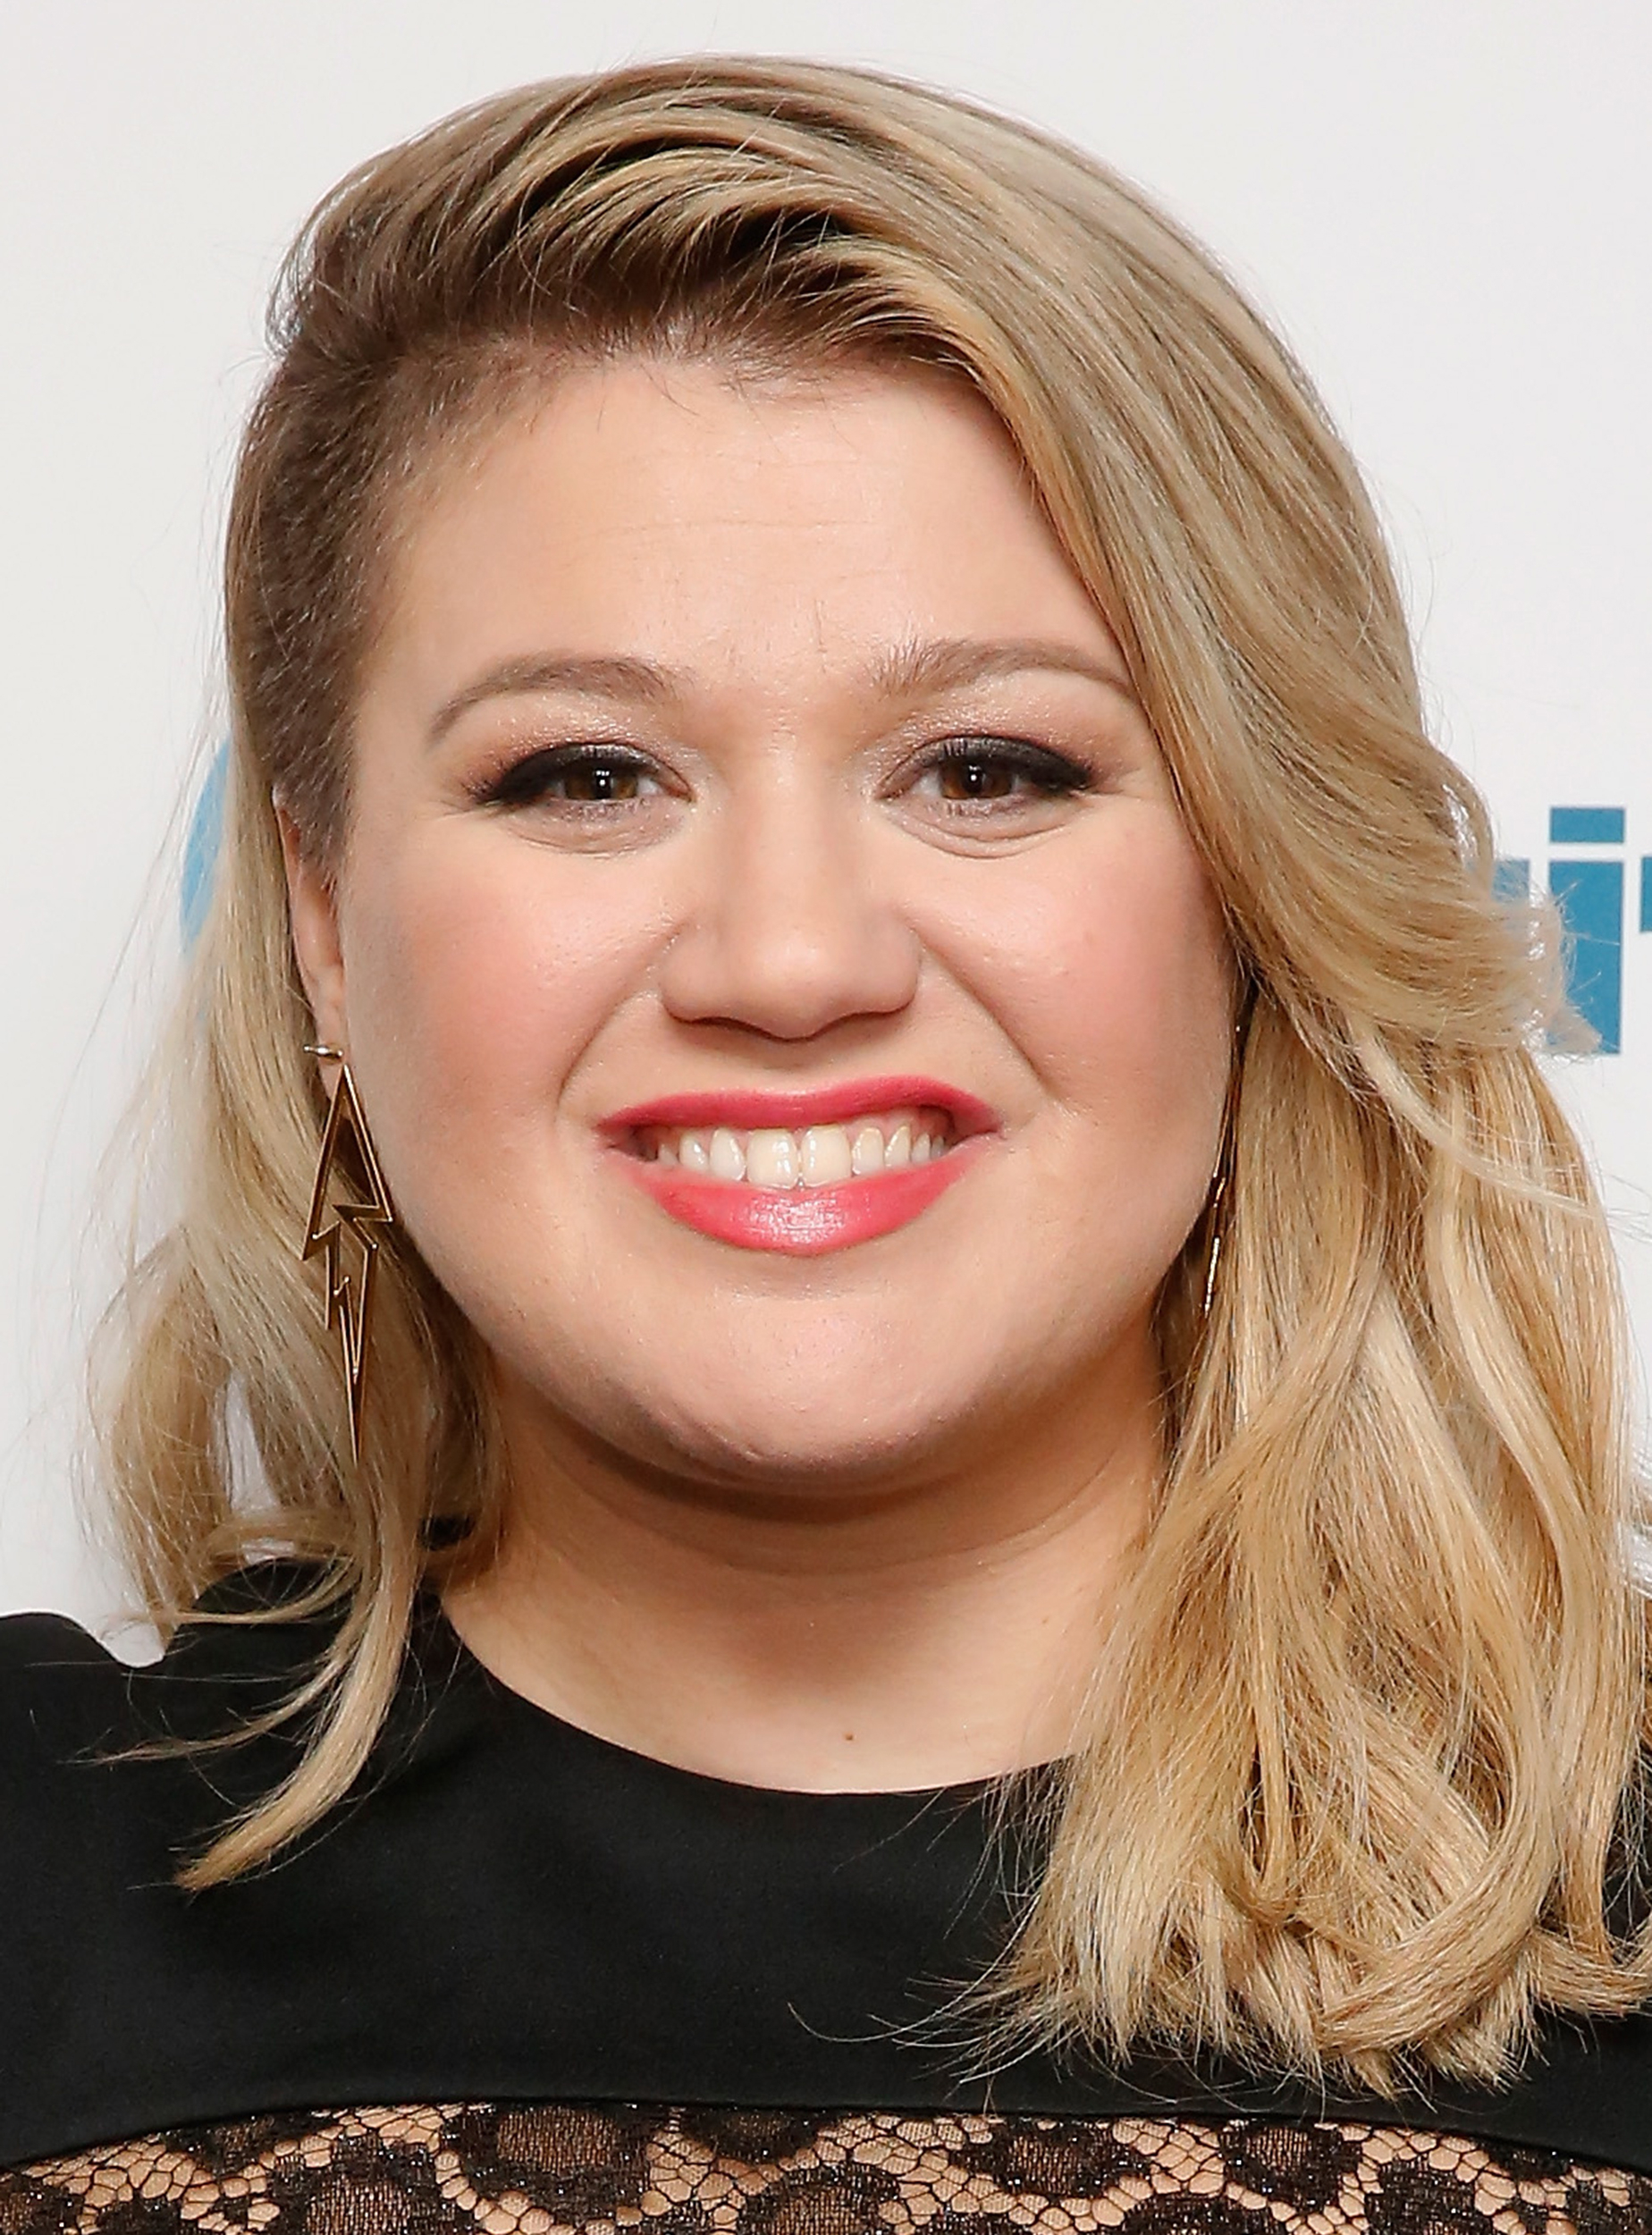 28 Best Hairstyles For Round Faces Pertaining To Kelly Clarkson Short Haircut (View 17 of 25)